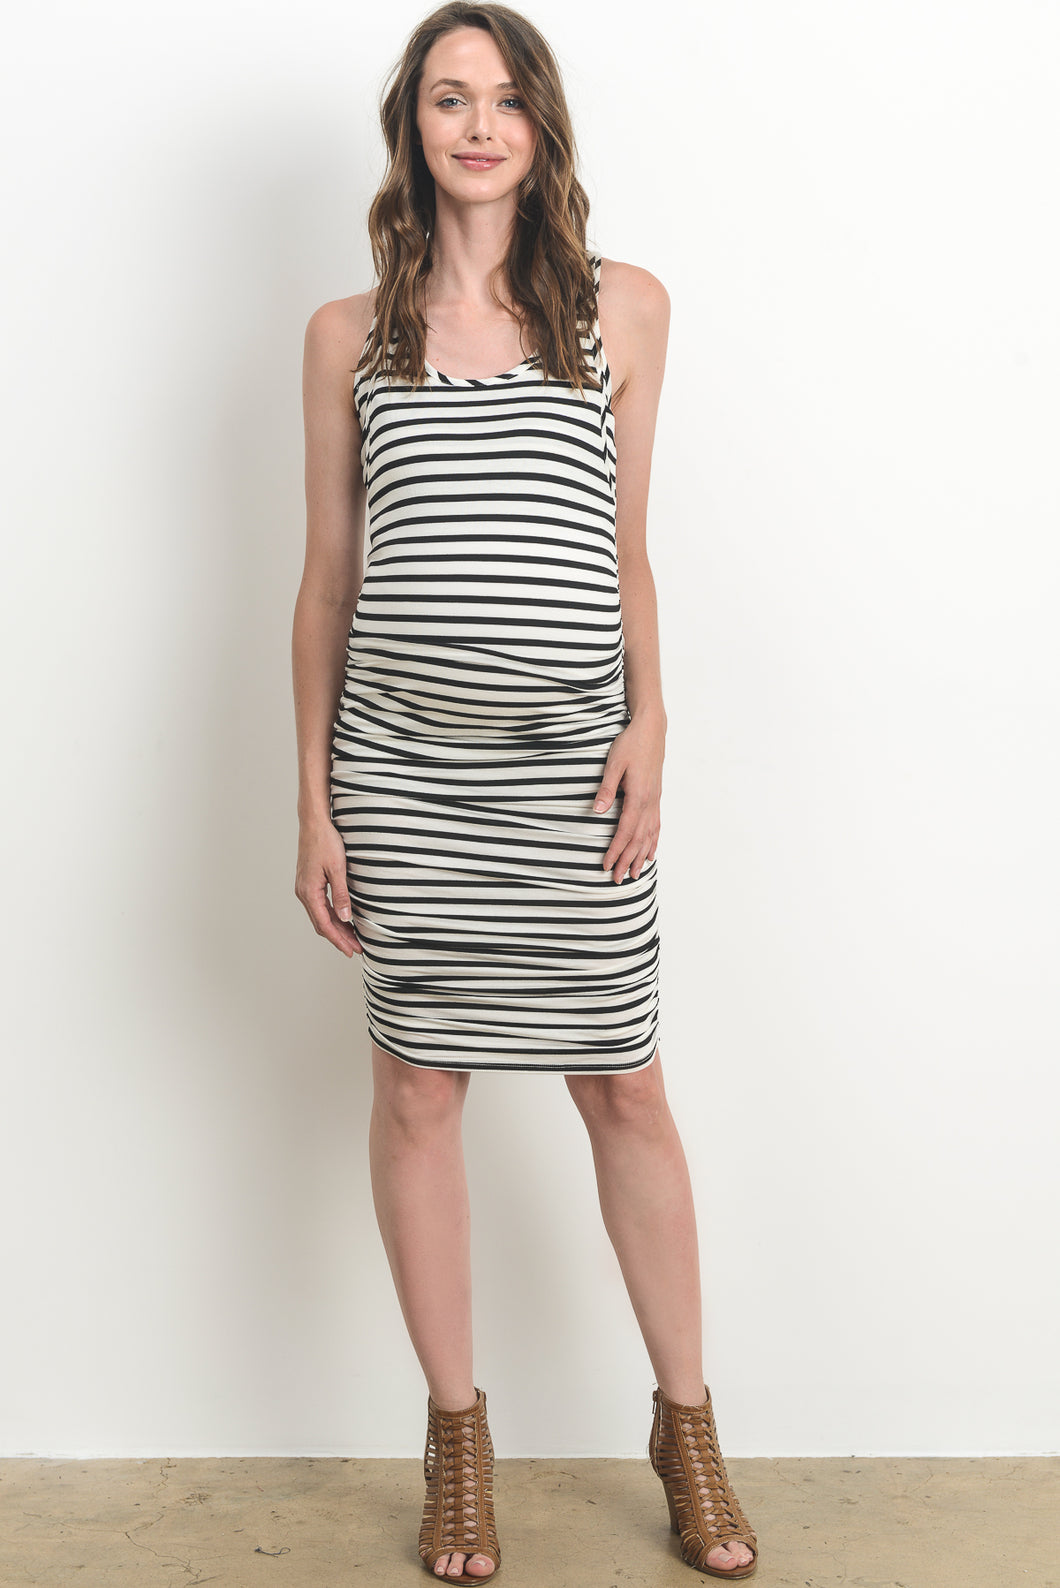 Stripe Black & White Maternity/Nursing Friendly Tank Dress